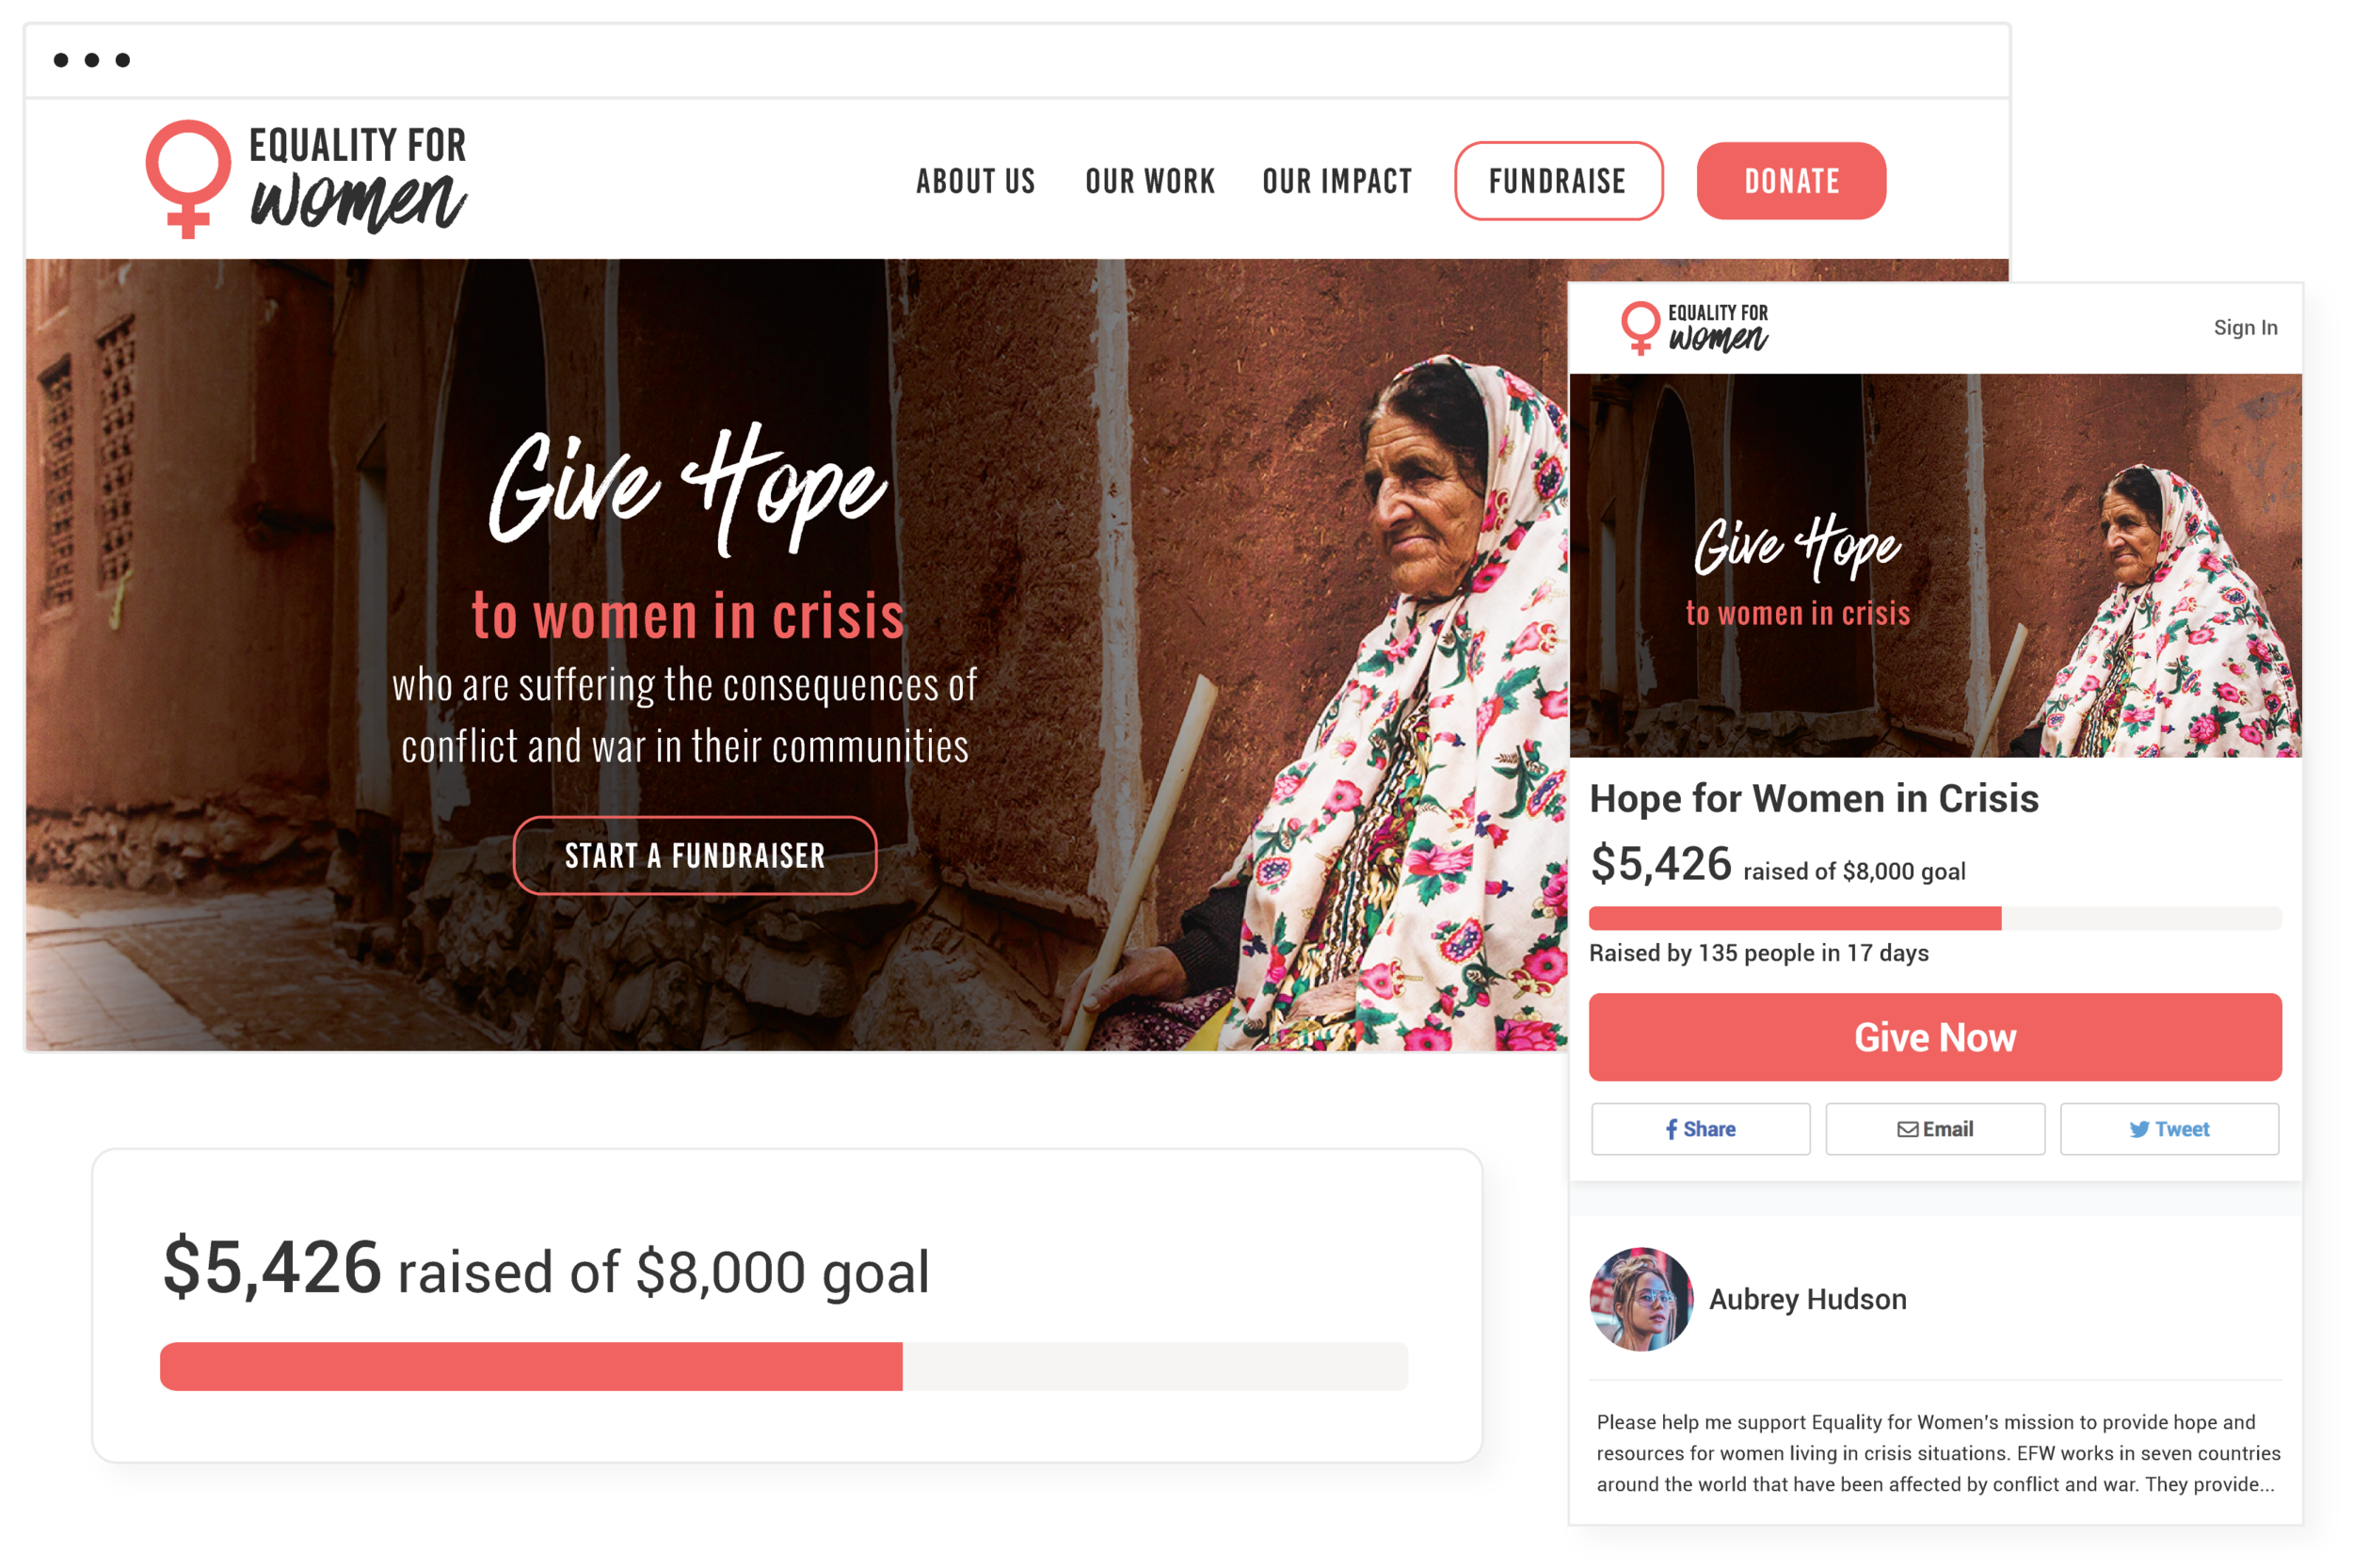 Empower your people - Mobilize supporters who are passionate about your cause with peer-to-peer fundraising pages they can launch with a few clicks.